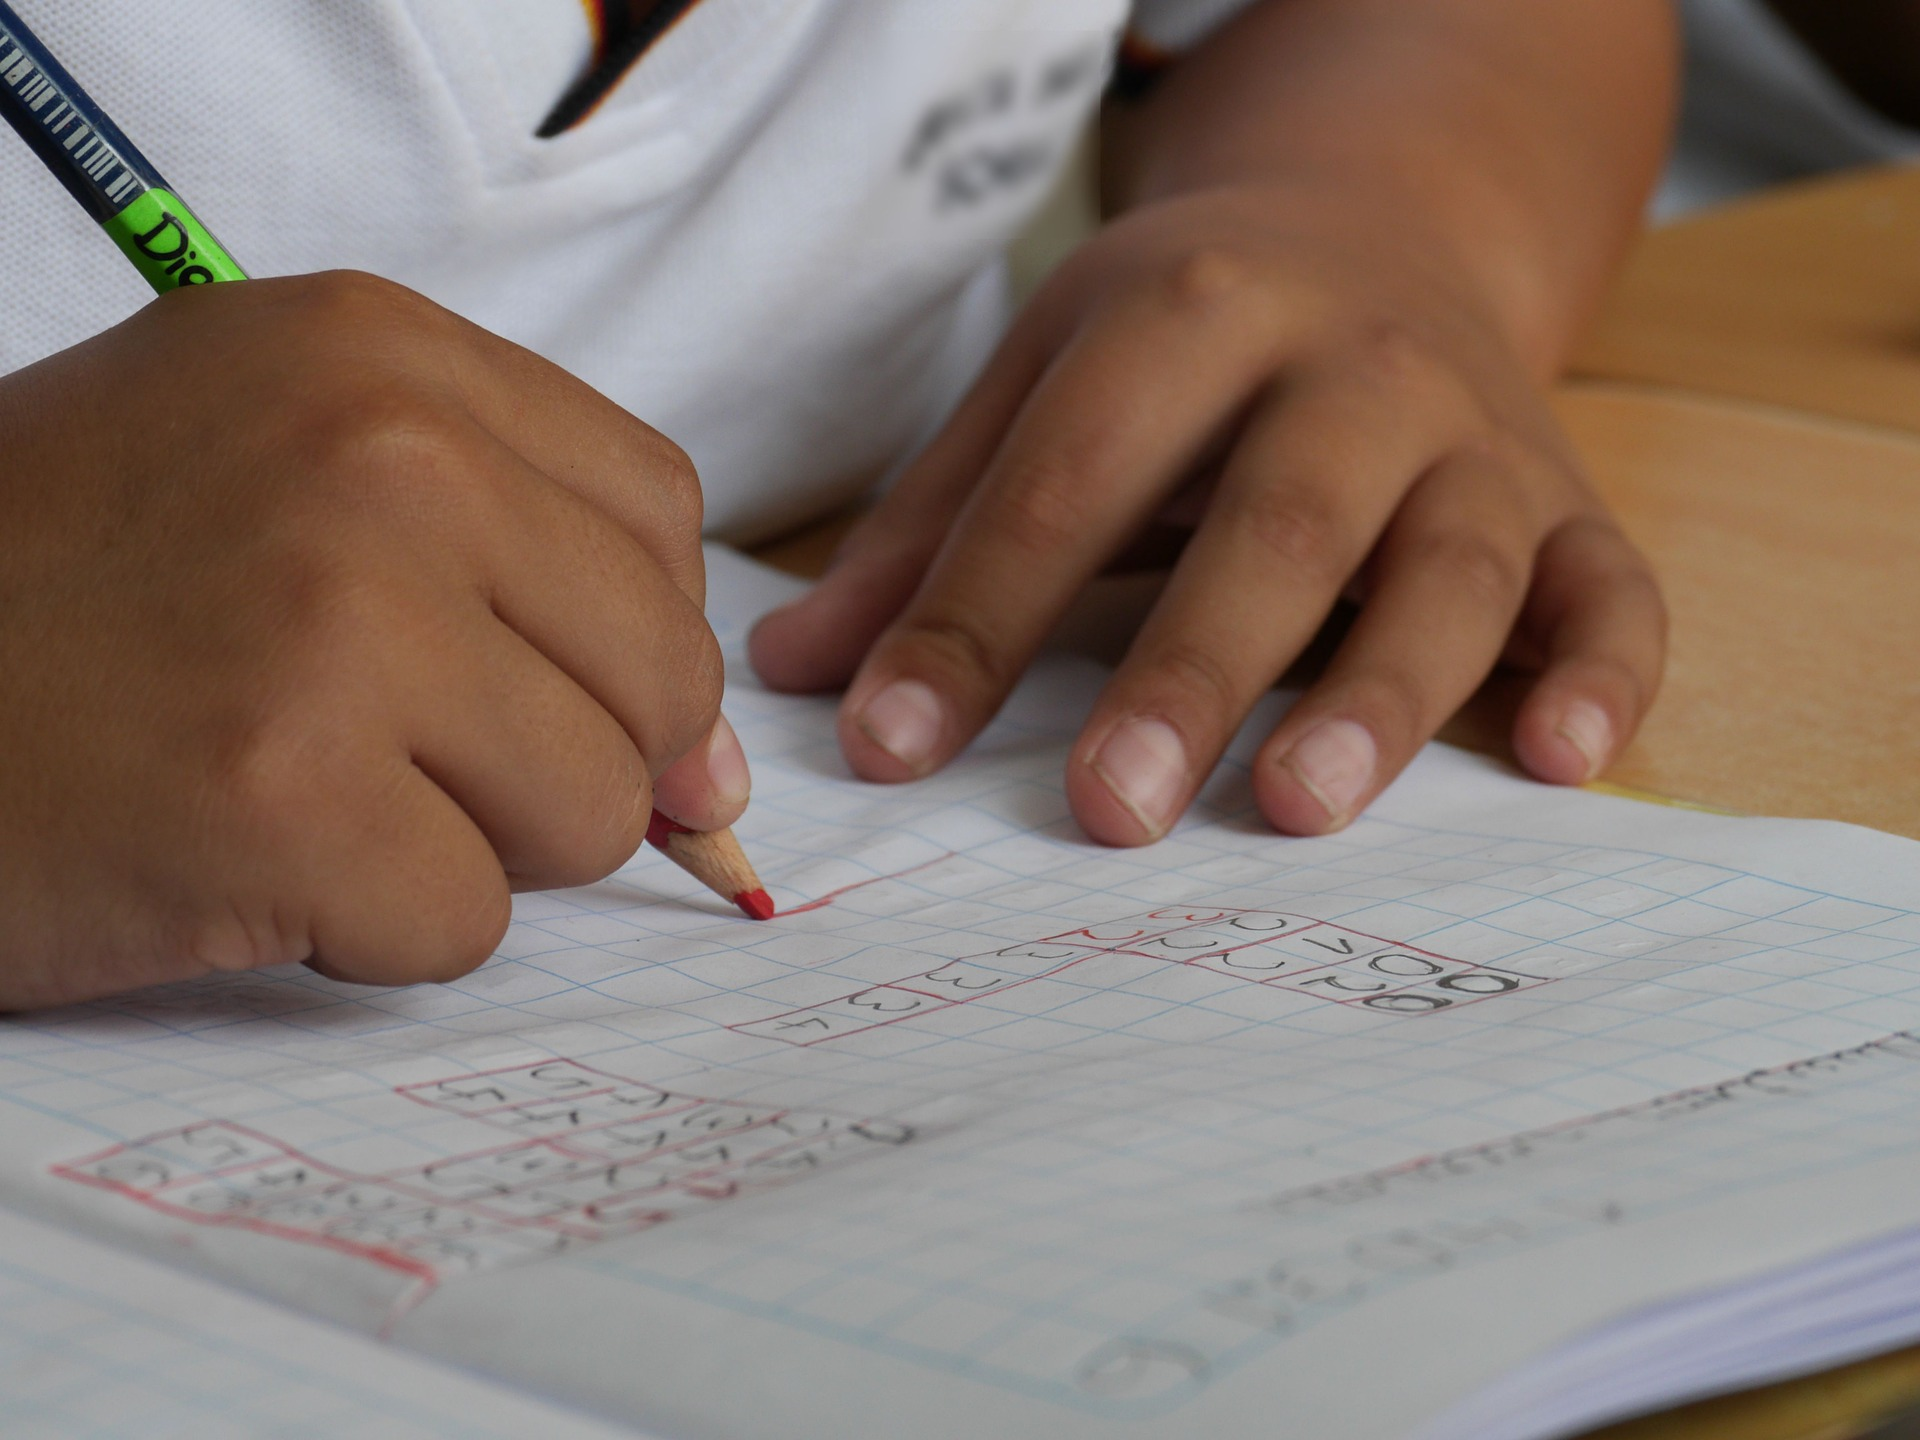 How to Help Kids Who Are Struggling with School